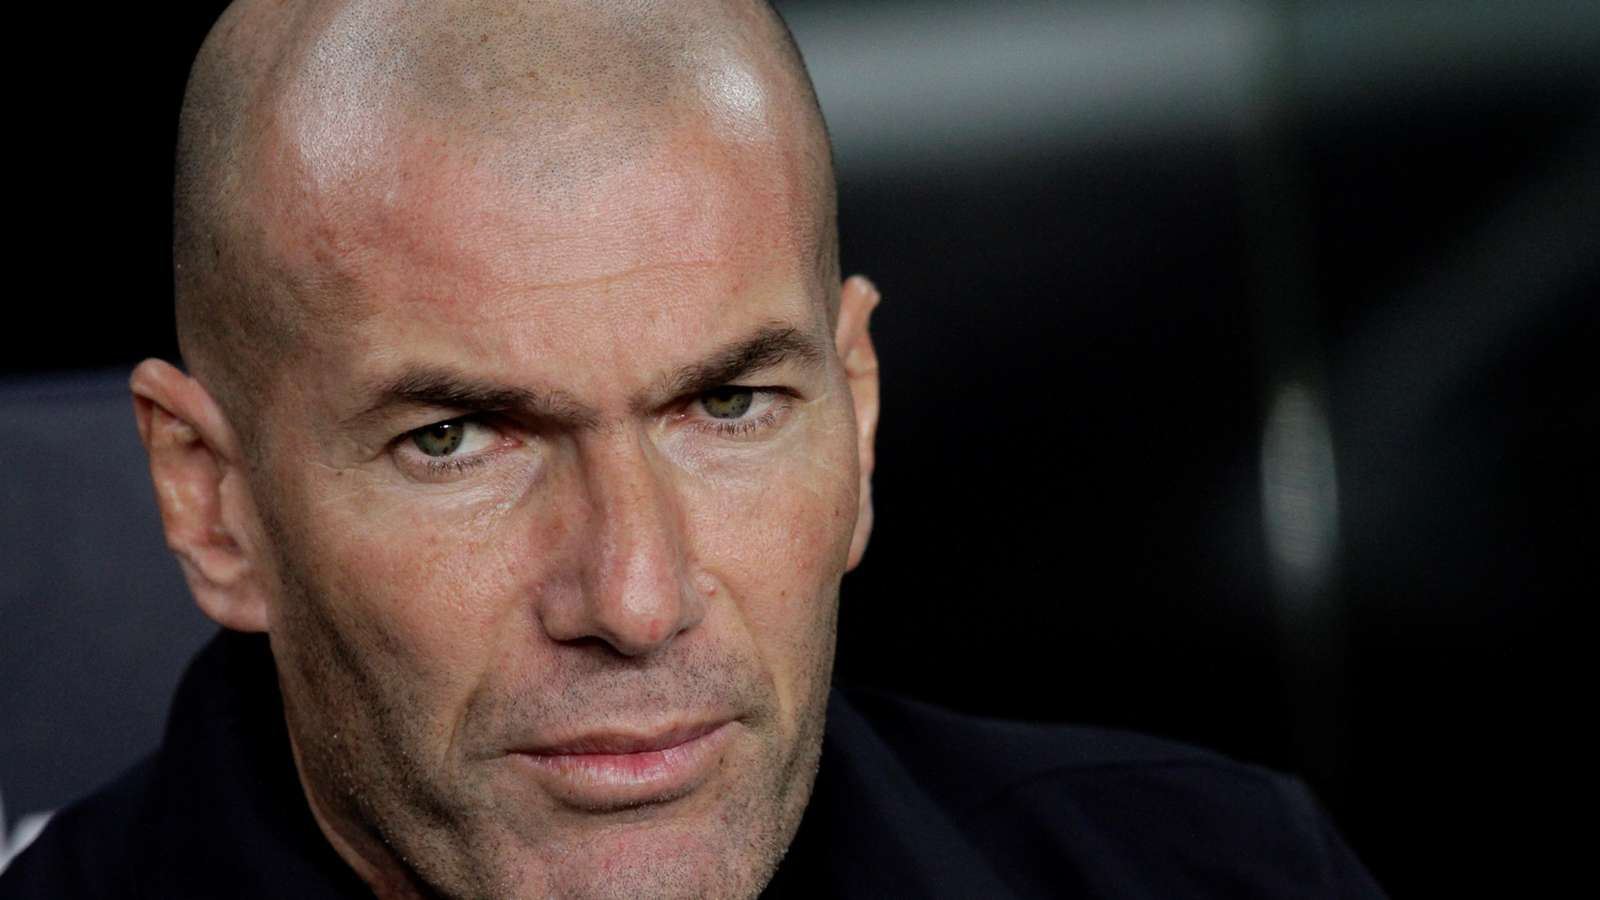 Zidane's house was robbed again